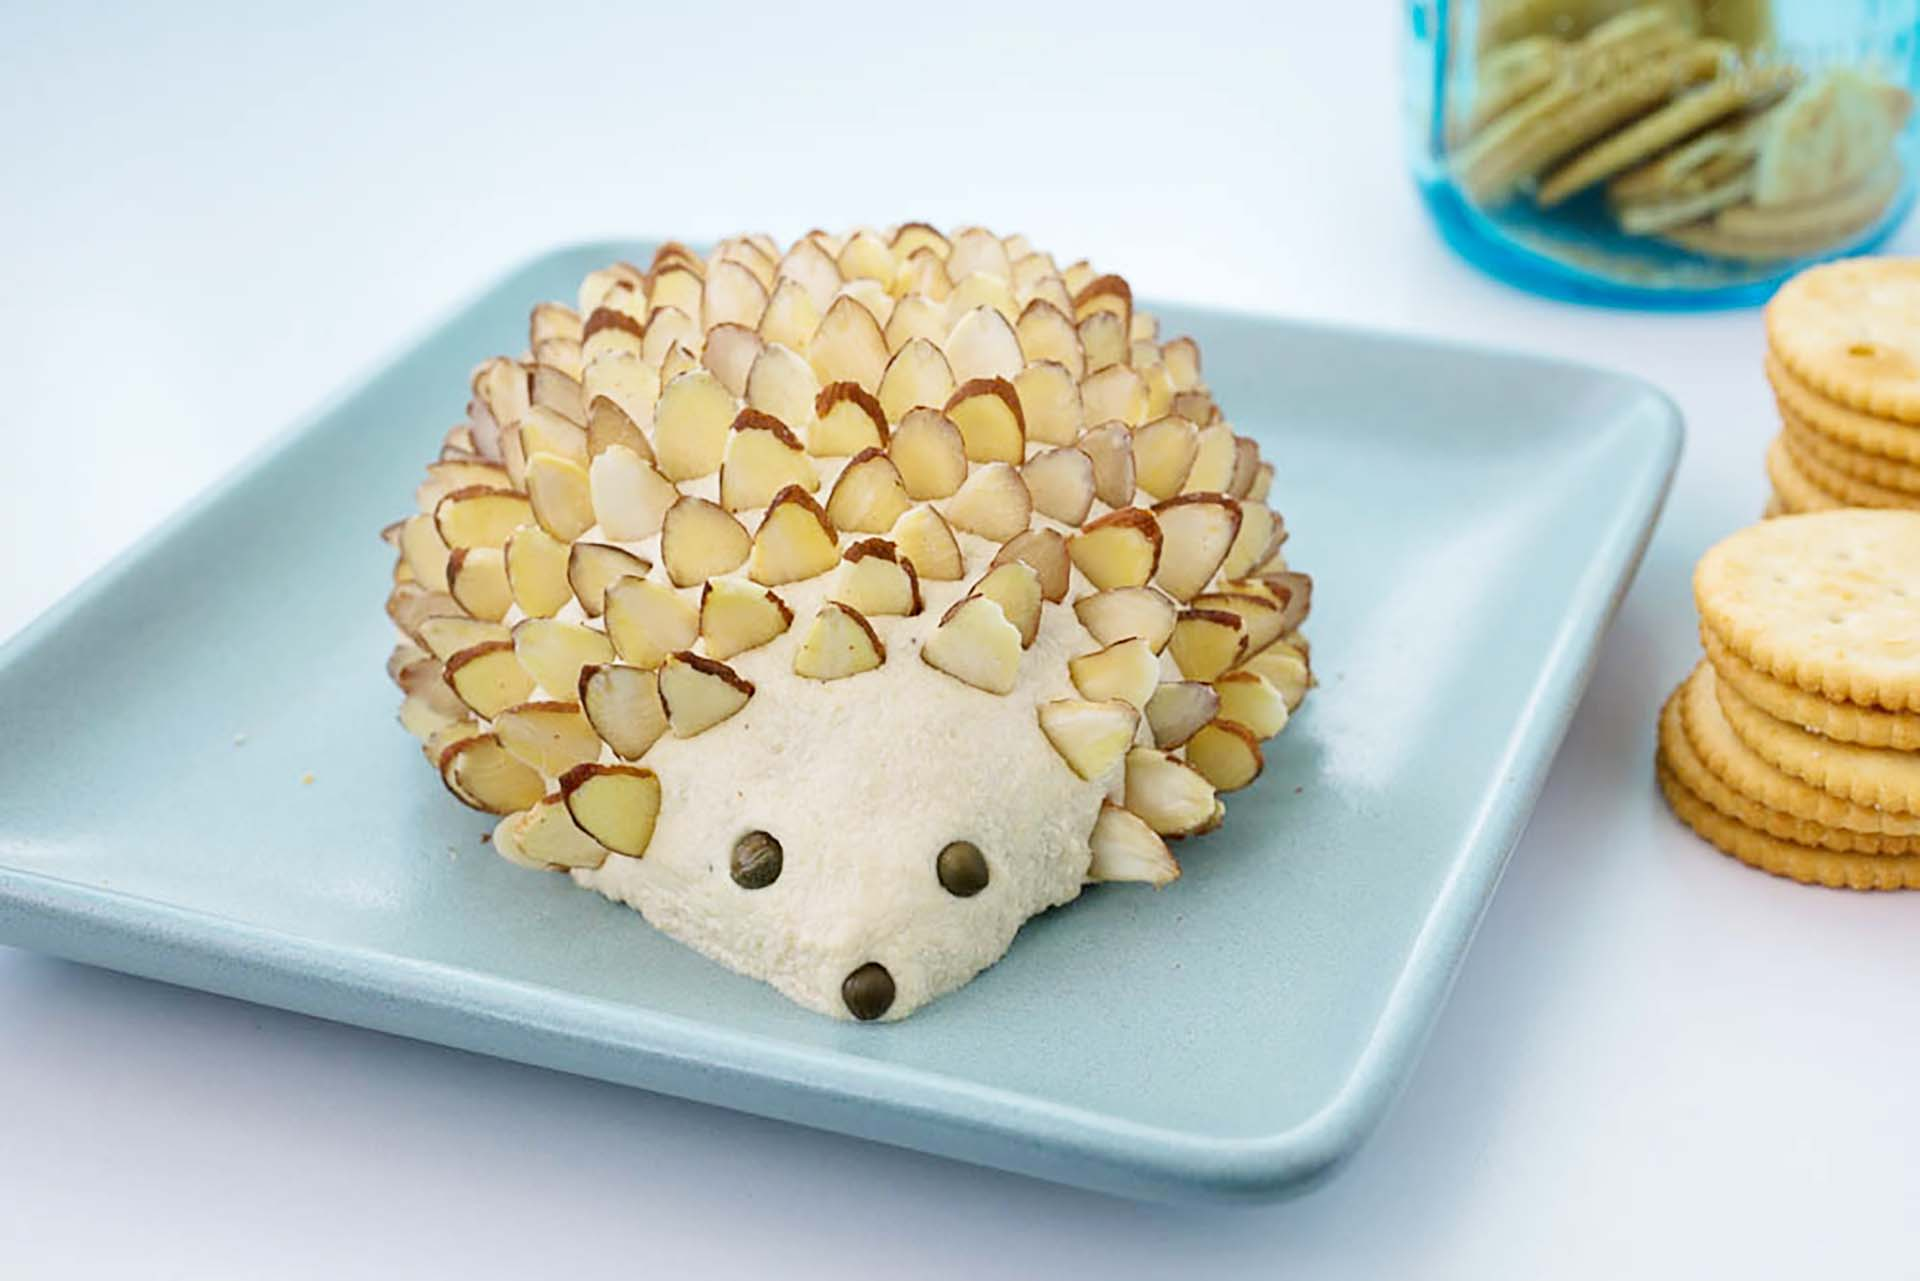 A cheeseball decorated to look like a hedgehog sitting on a blue plate with a couple of stacks of crackers nearby.